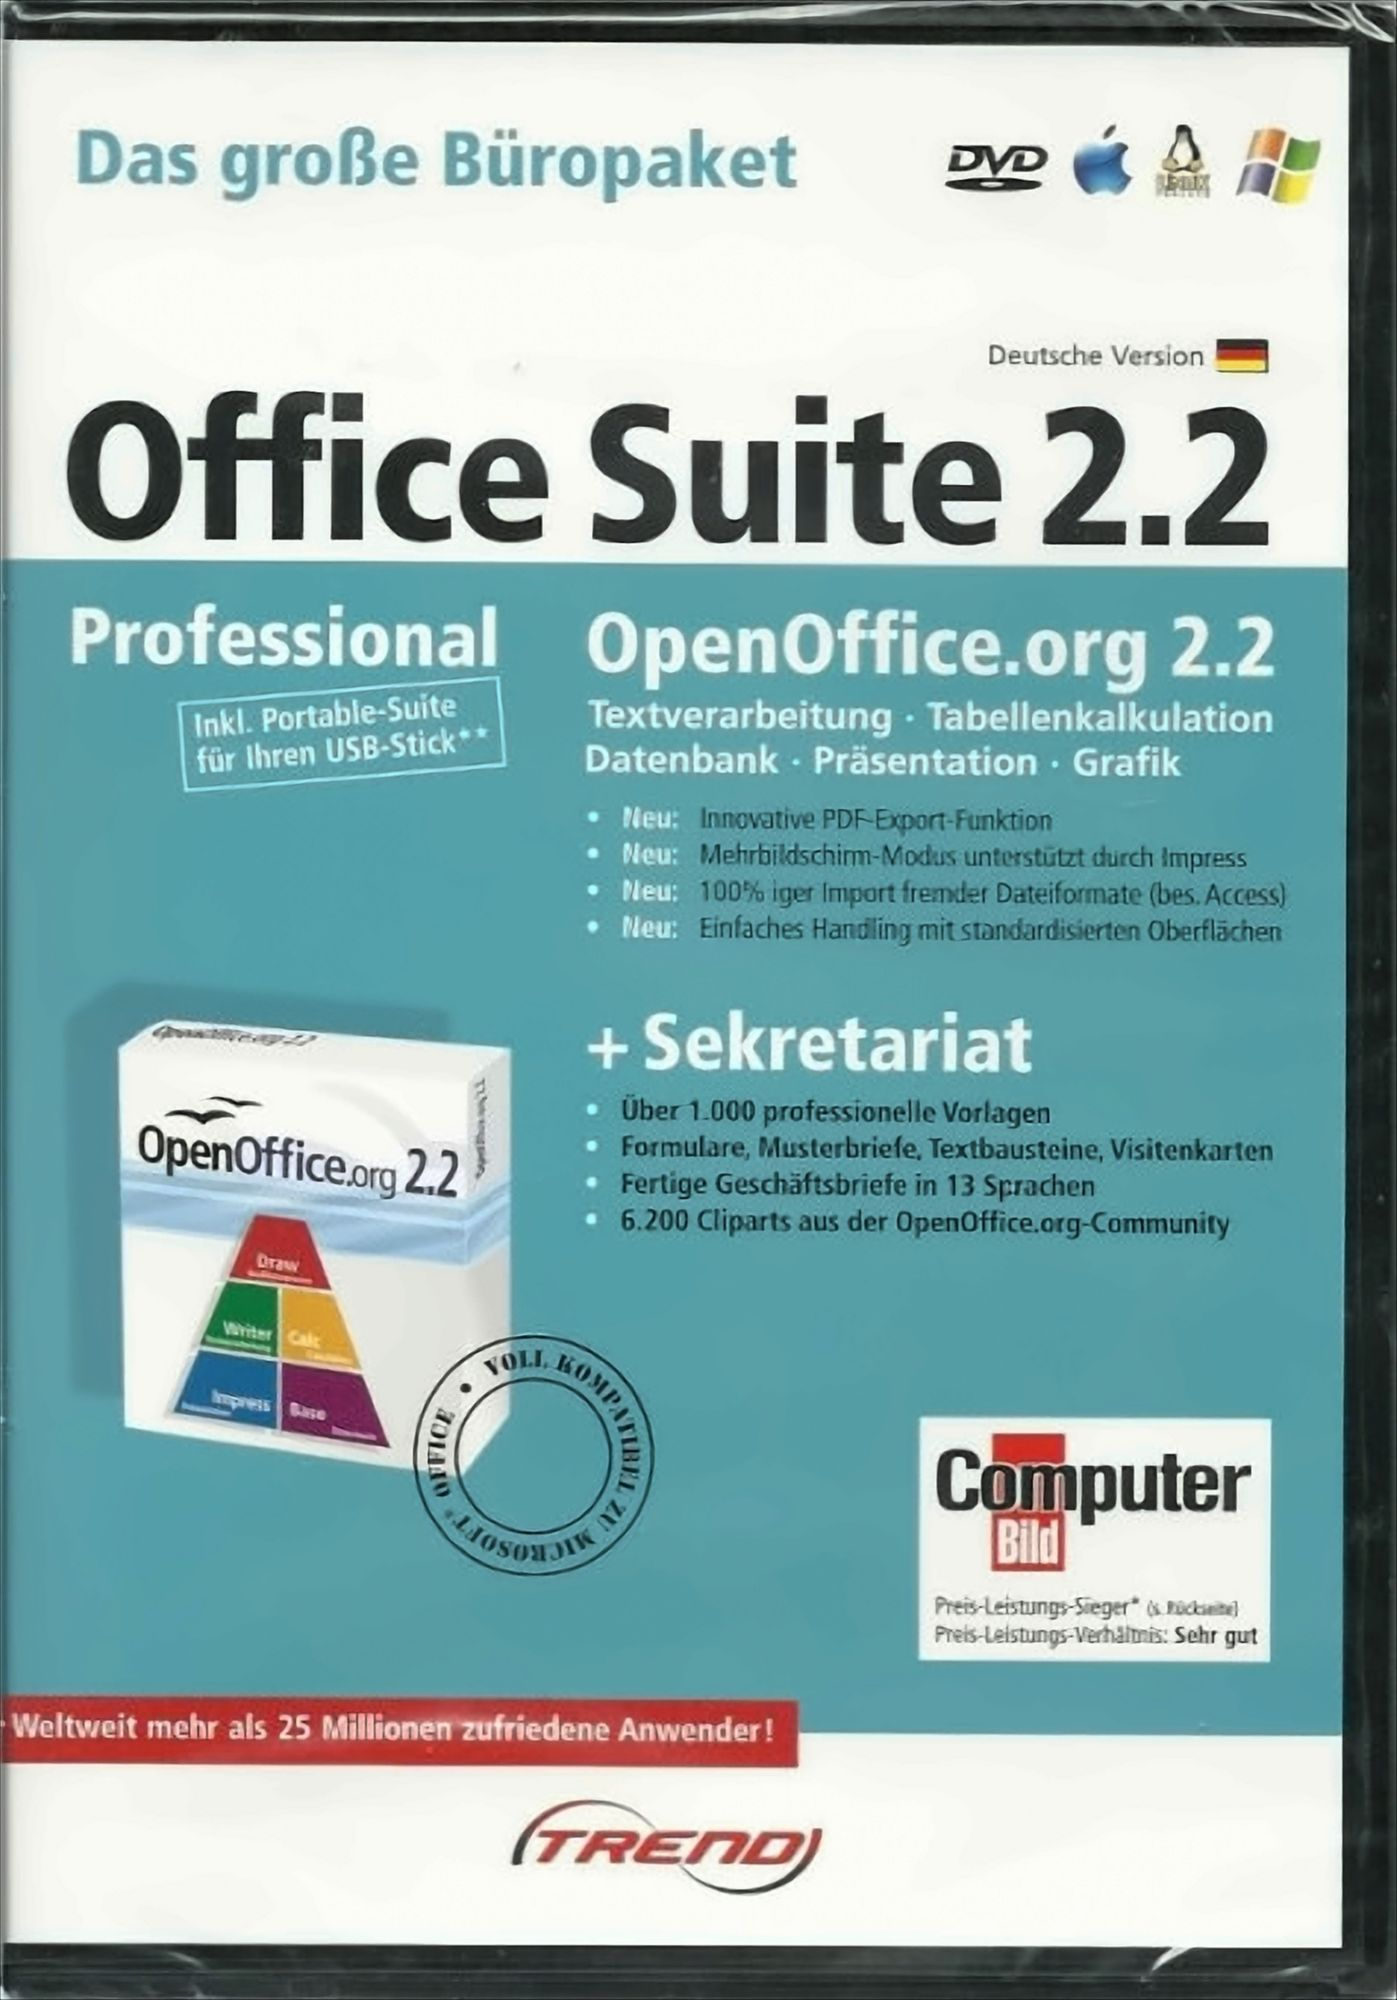 Open Office Professional Suite 2.2